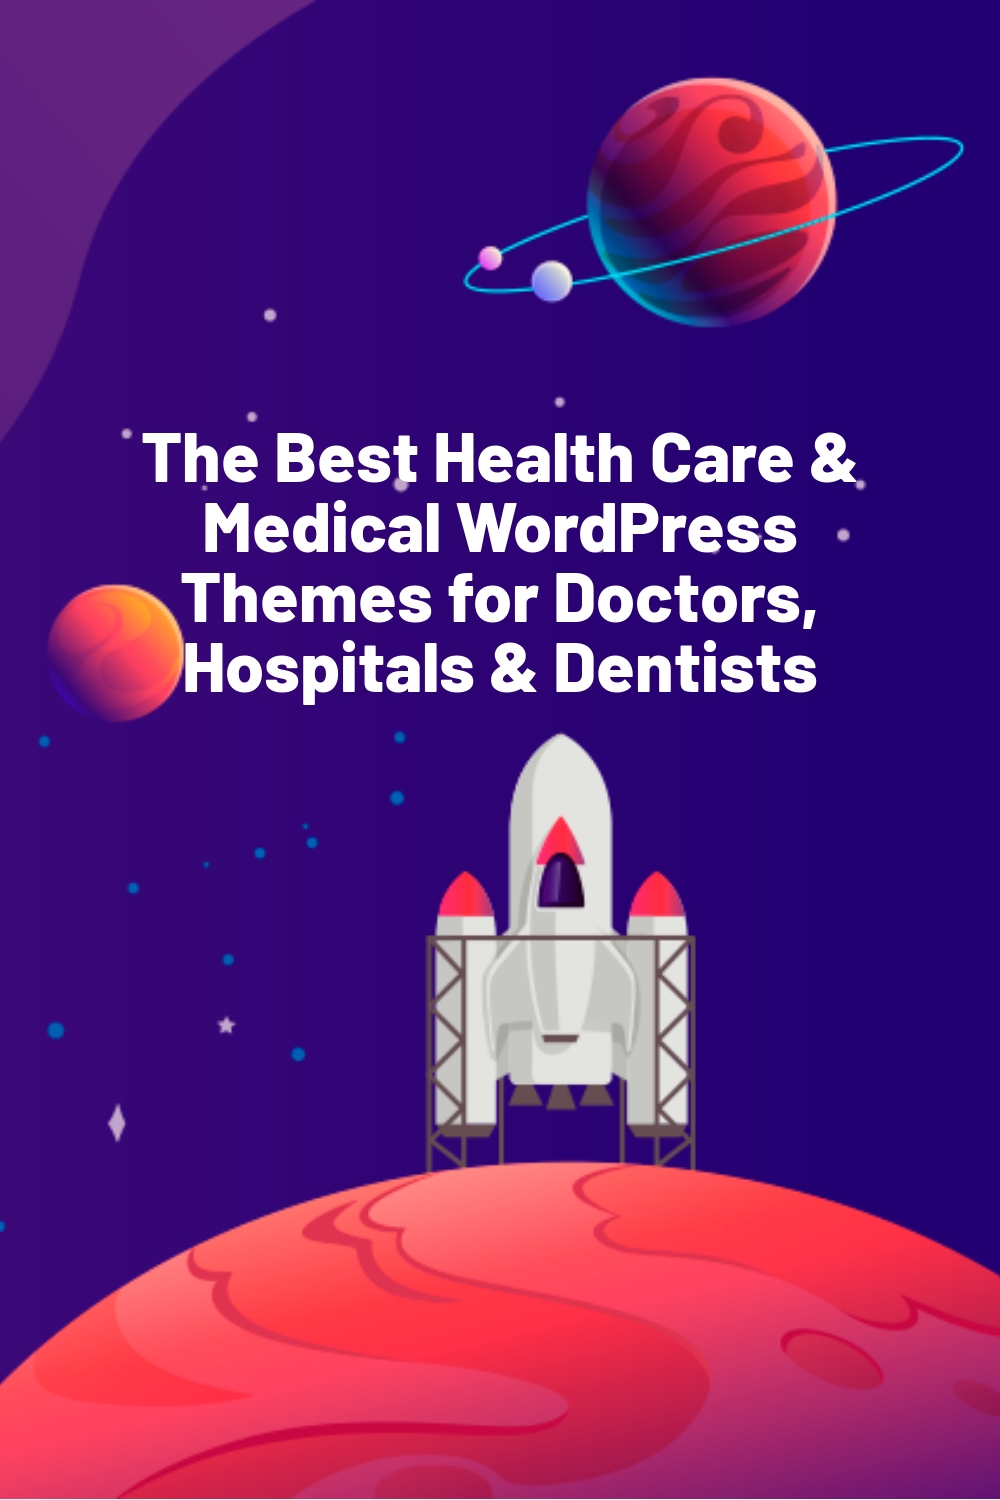 The Best Health Care & Medical WordPress Themes for Doctors, Hospitals & Dentists